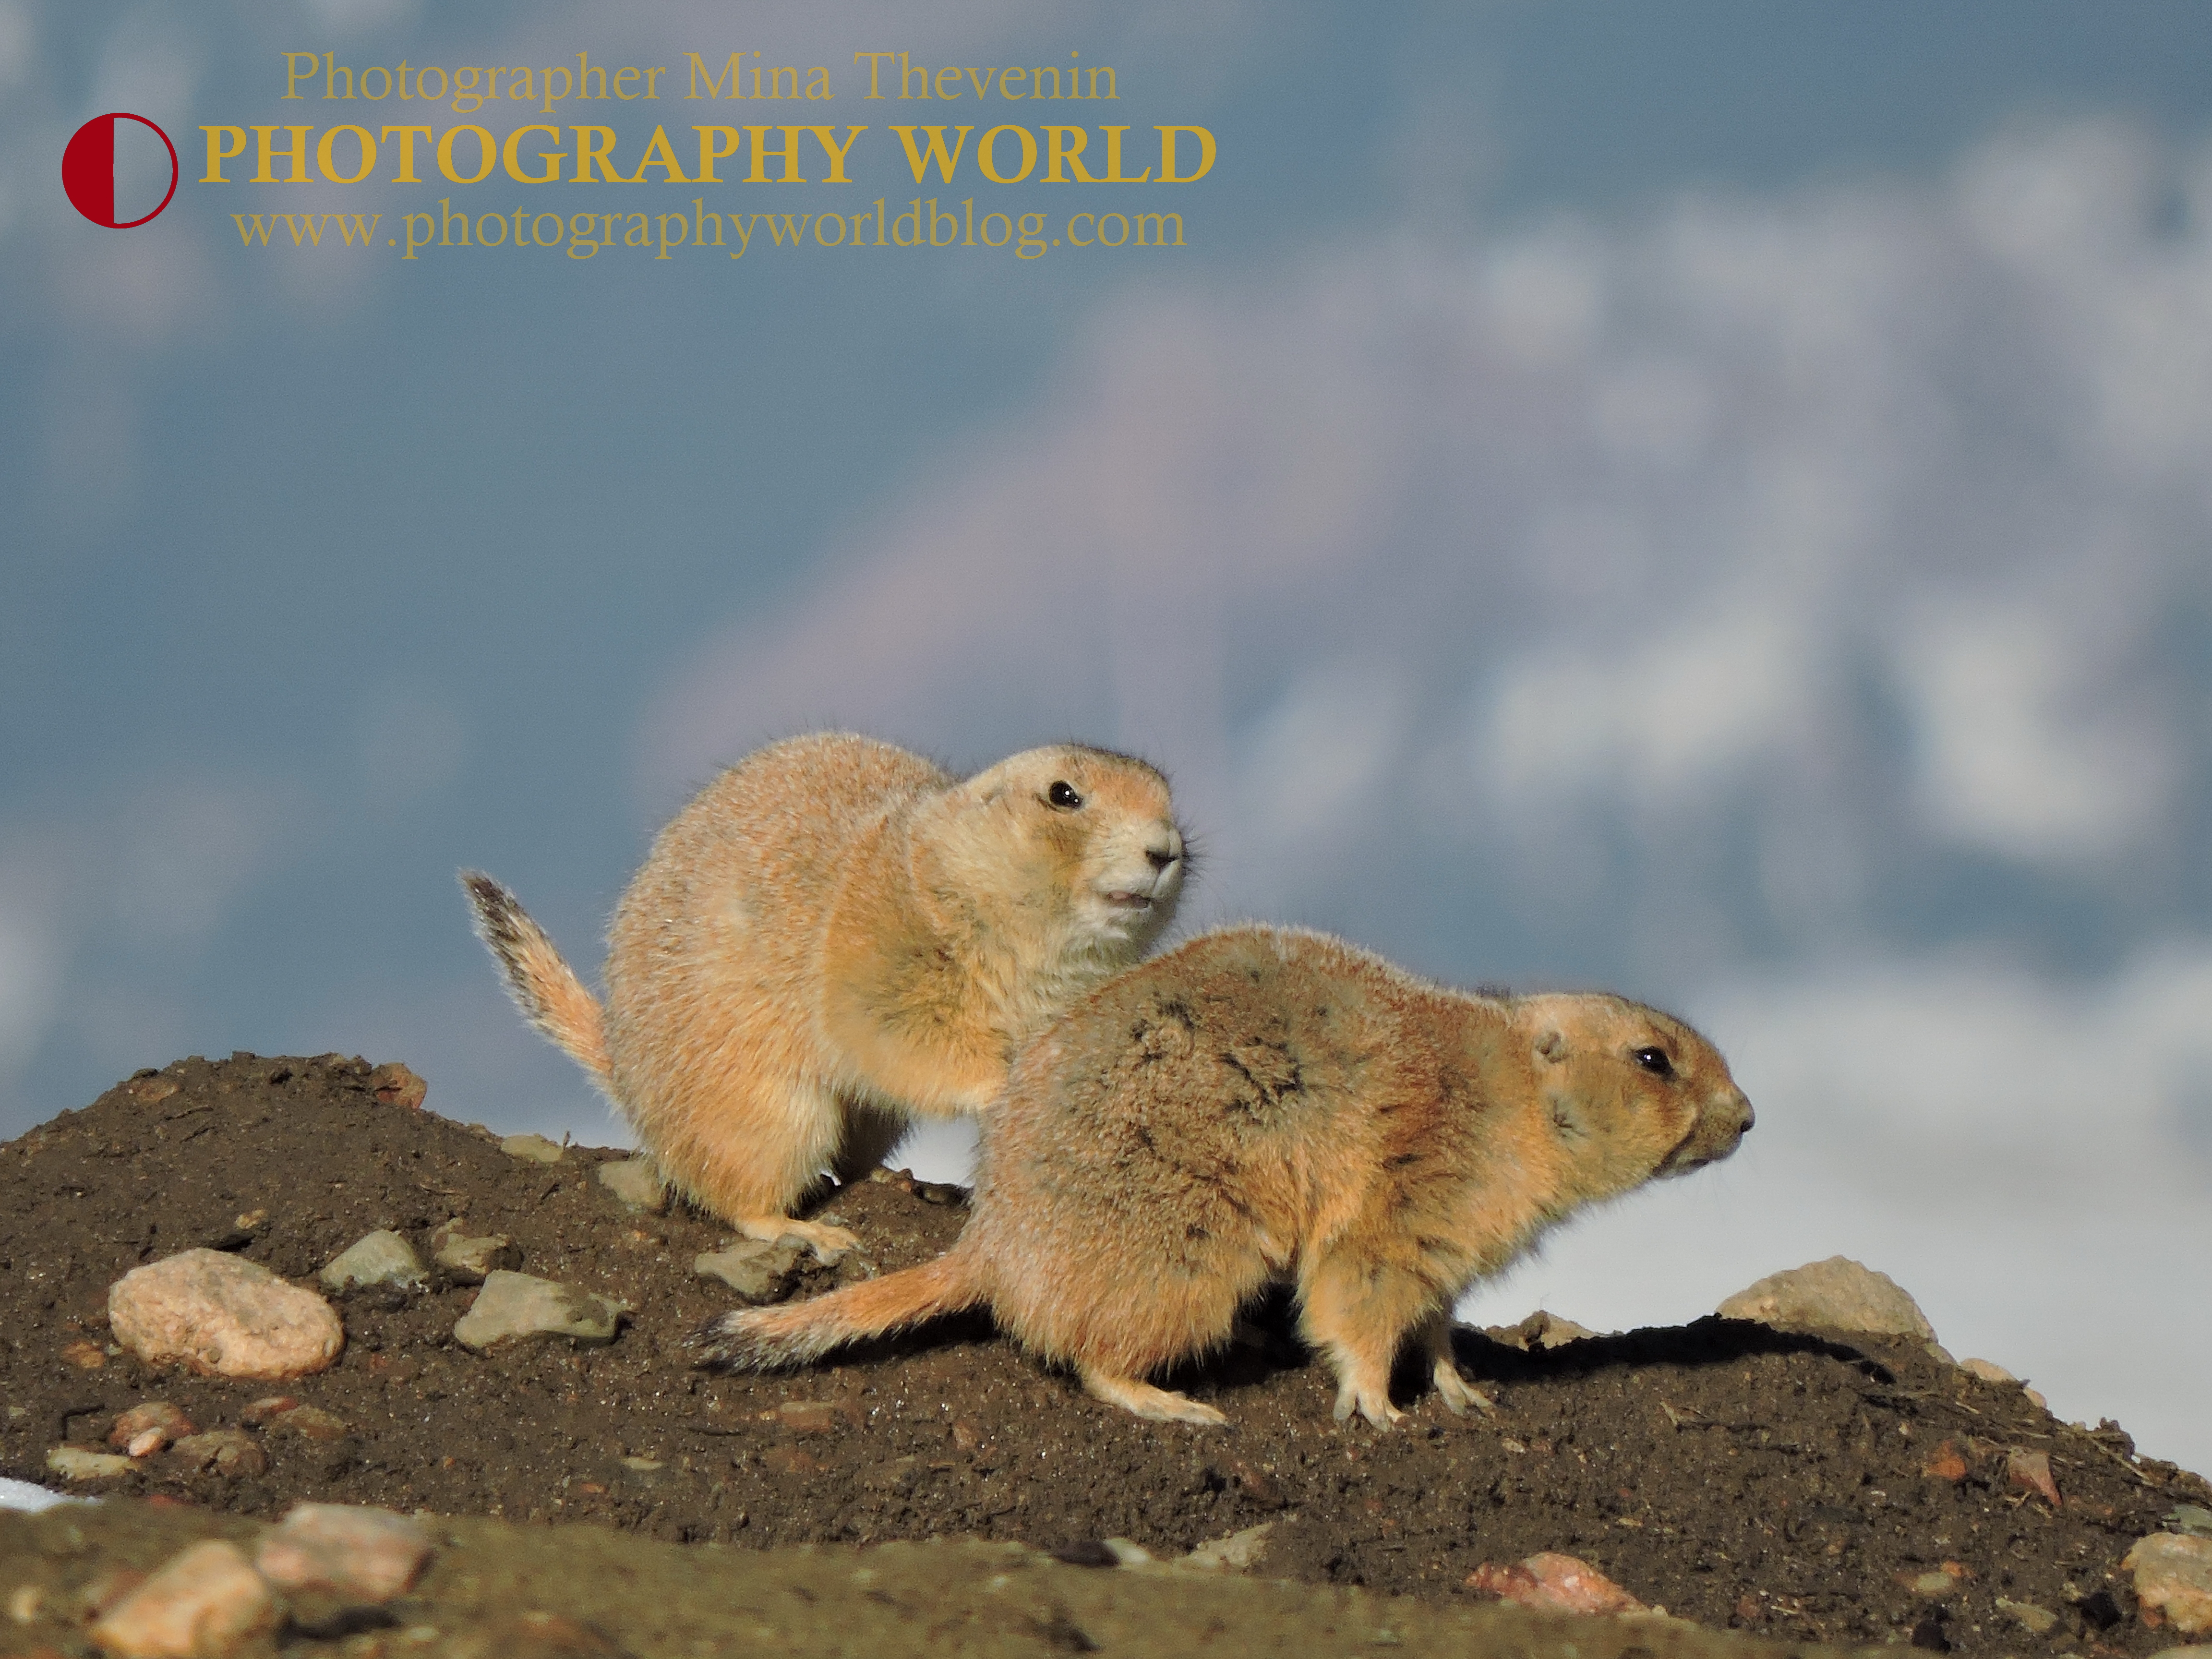 Let's Get It On. Colorado Black-Tailed Prairie Dogs. Photographer Mina Thevenin, March 2015 @ https://photographyworld.org/animals/black-tailed-prairie-dog-who-let-the-dogs-out/